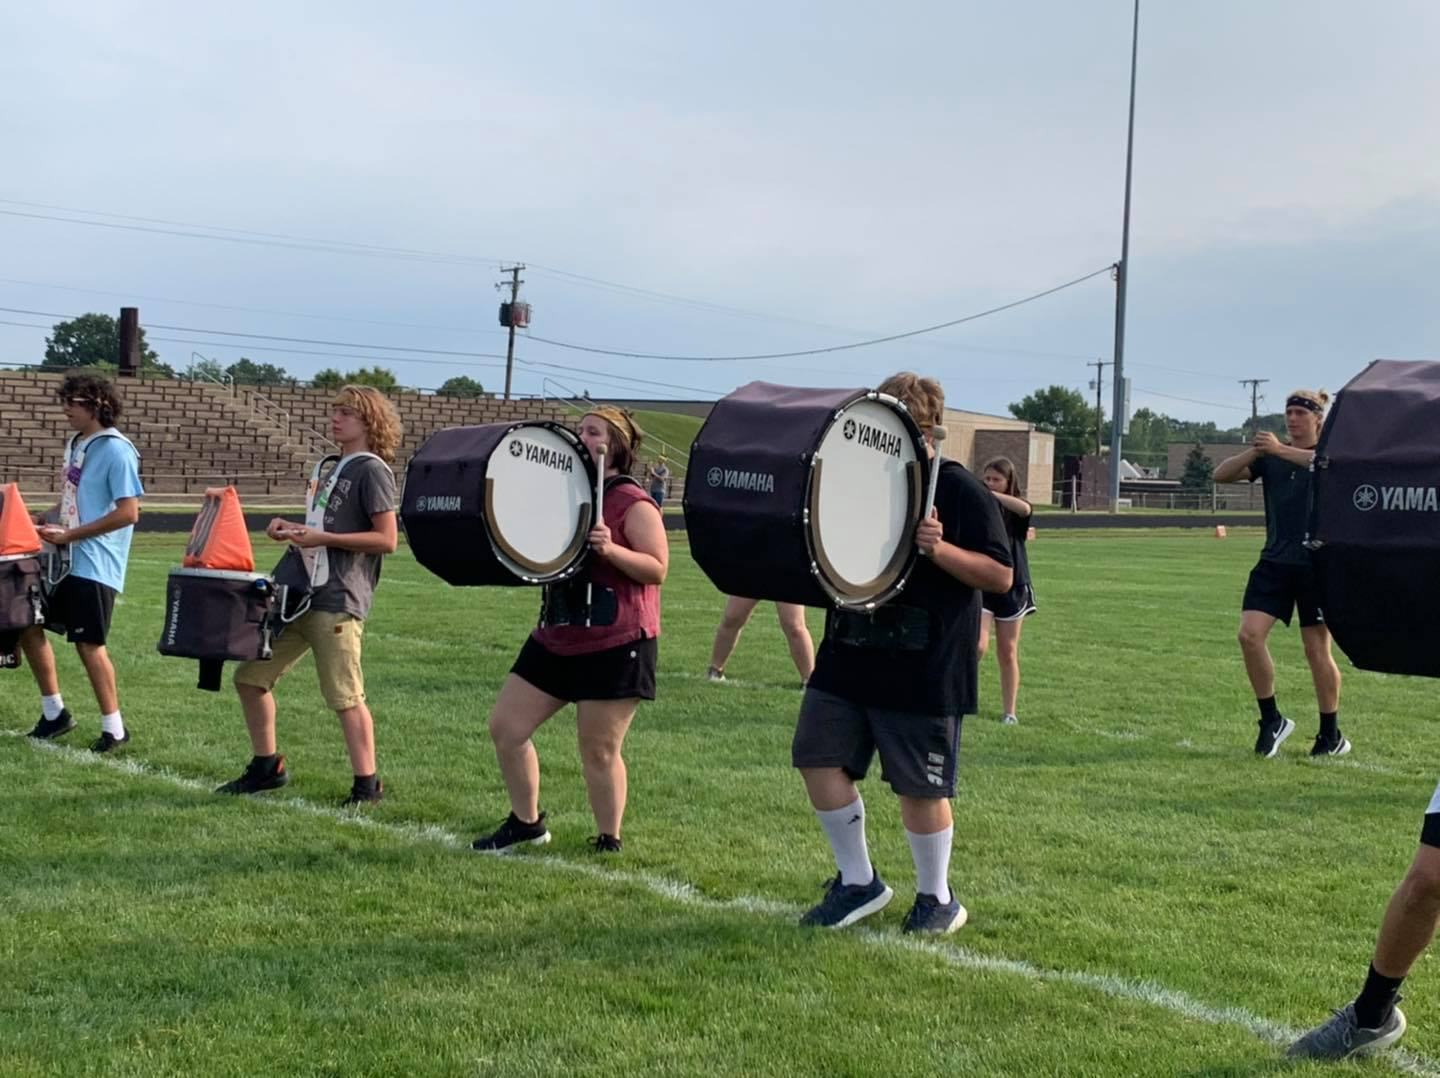 Students  outdoors carrying and playing large drums